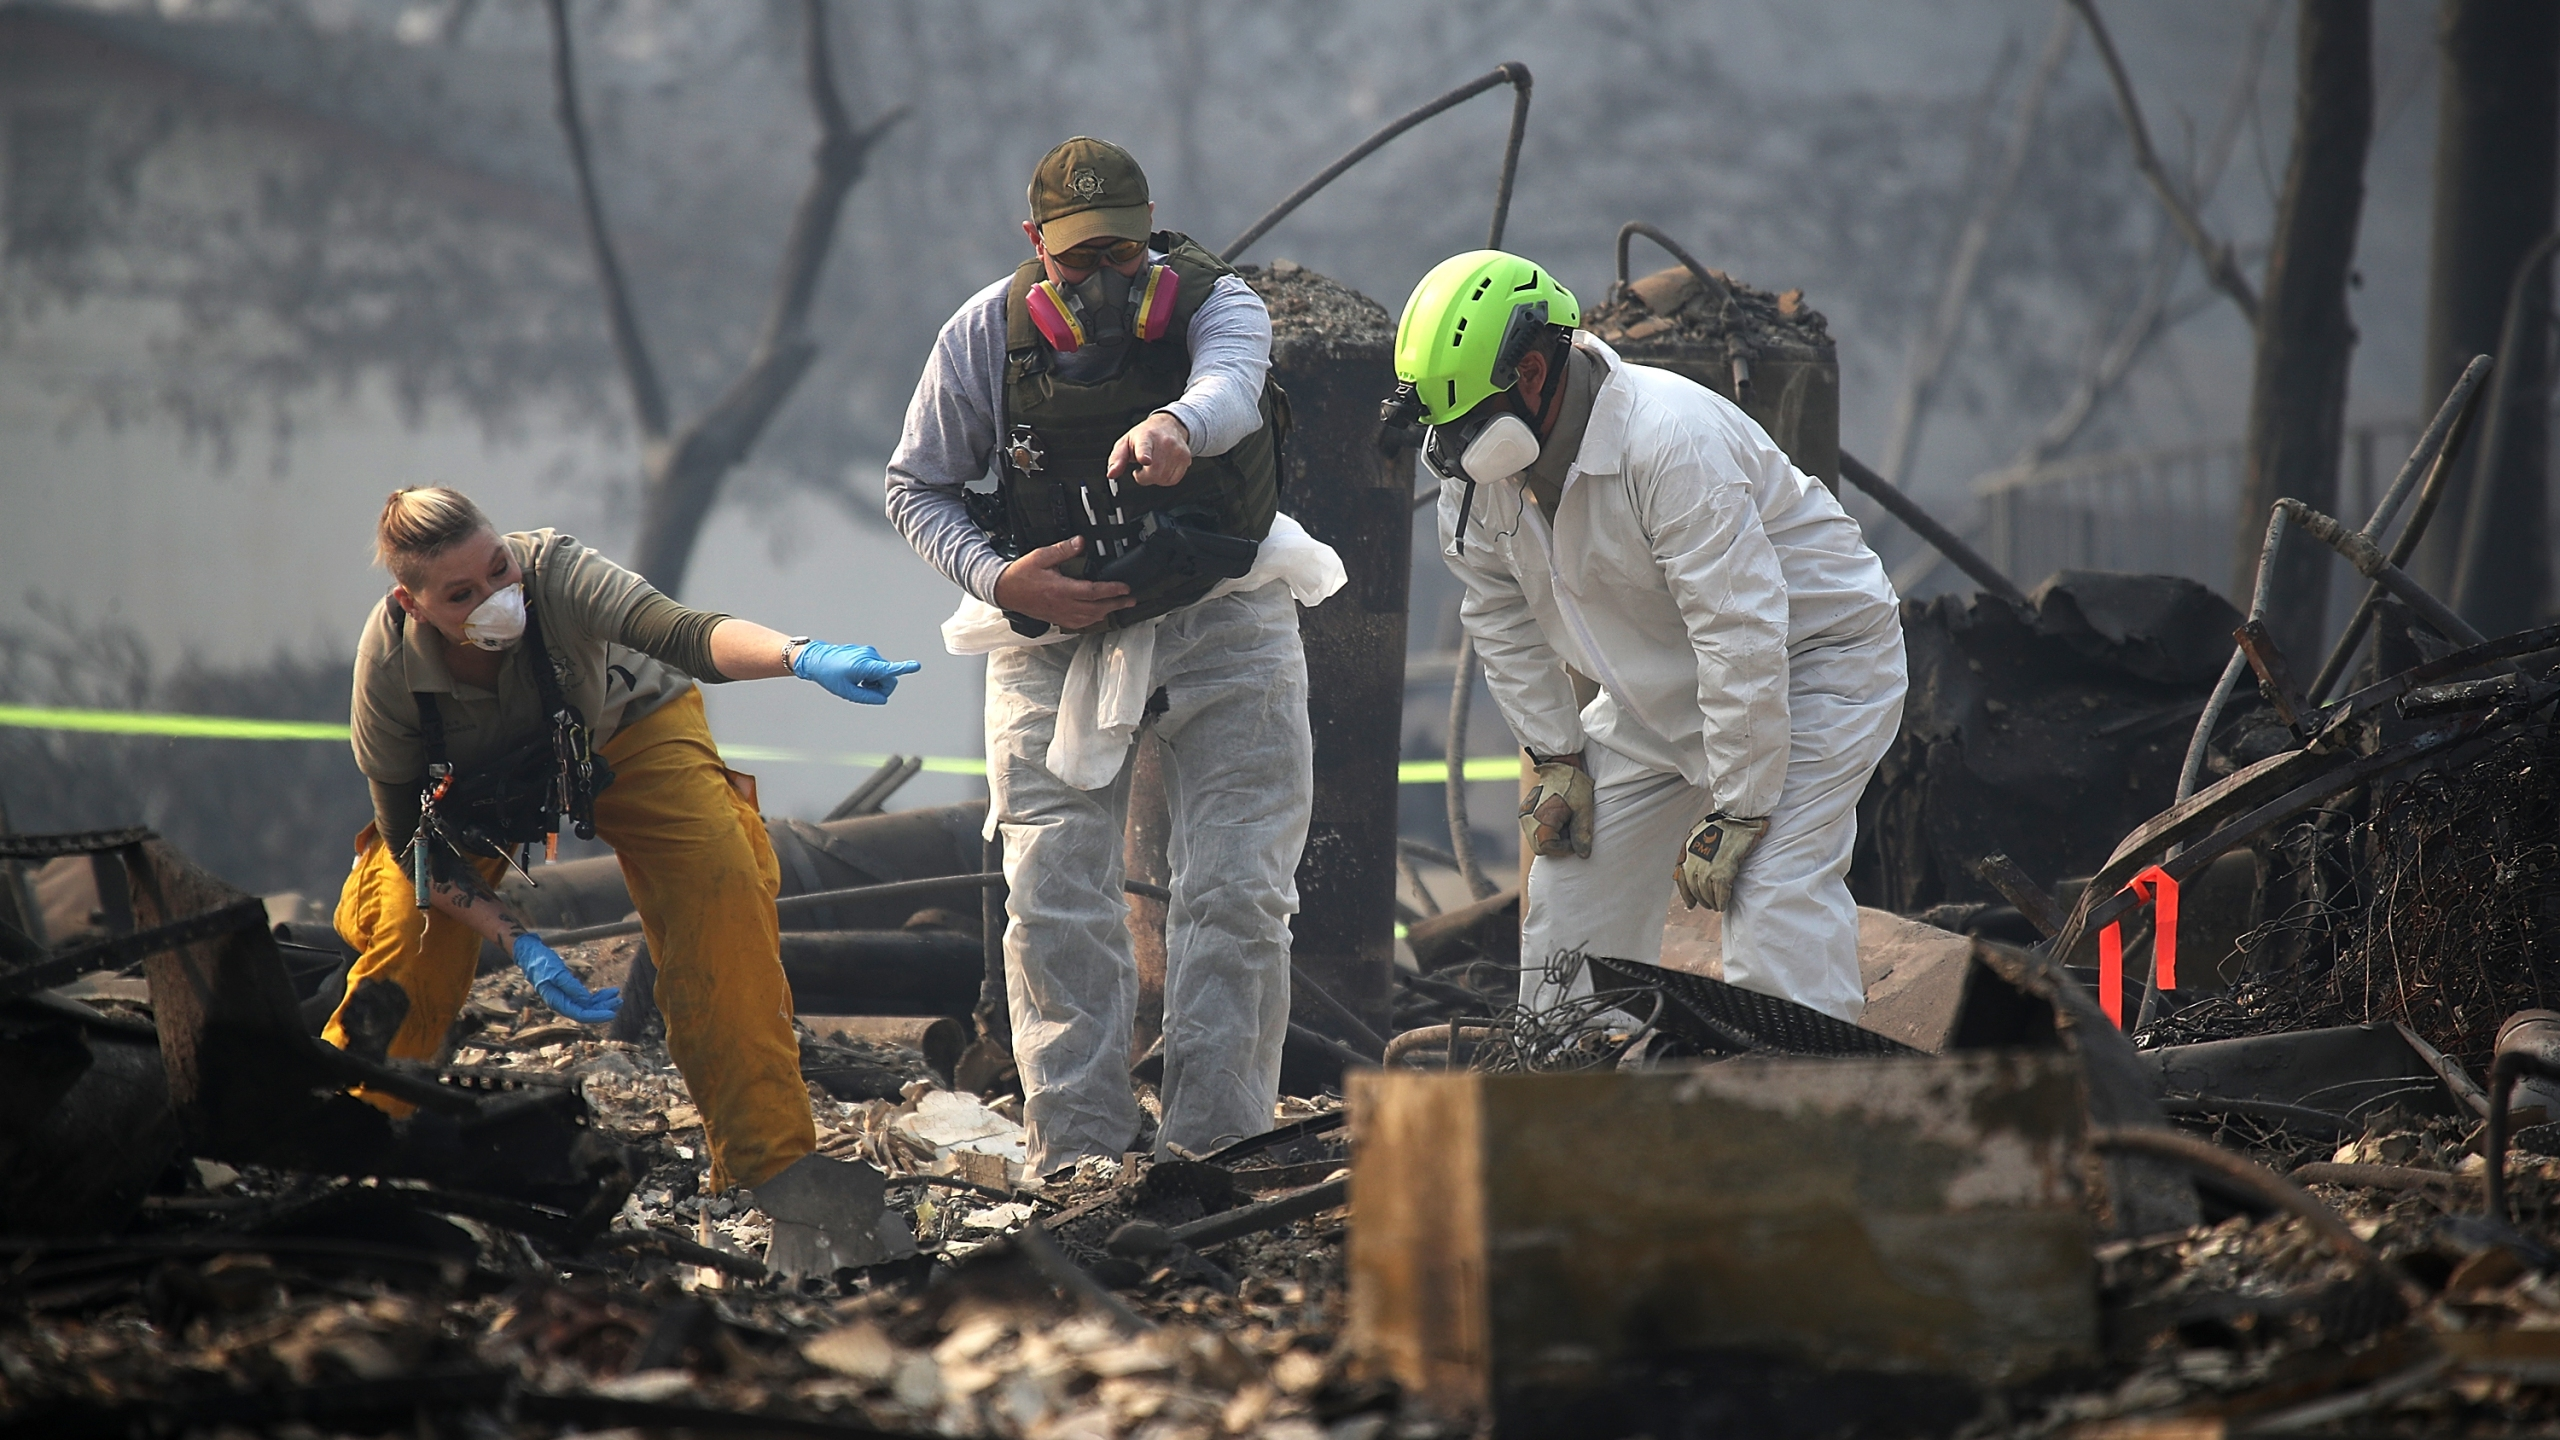 Rescue workers search an area where they discovered suspected human remains in a home in Paradise destroyed by the Camp Fire on Nov. 16, 2018. (Credit: Justin Sullivan / Getty Images)